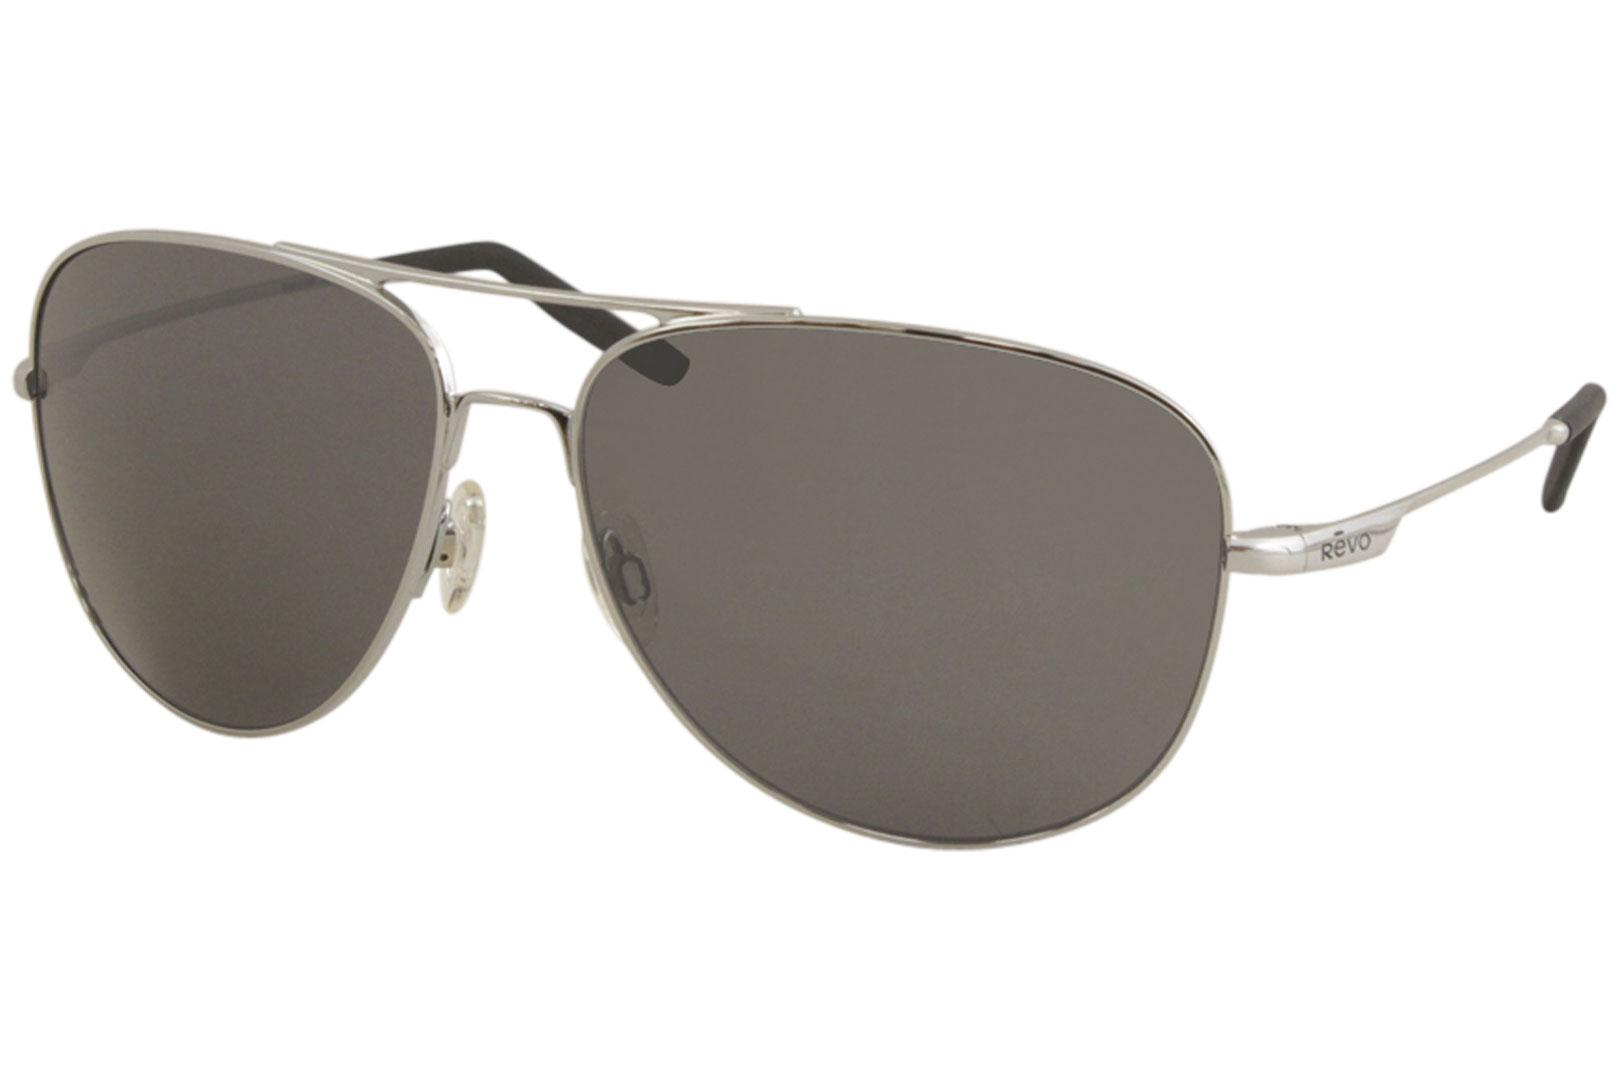 Image of - Chrome/Polarized Grey Graphite   03 - Lens 63 Bridge 14 Temple 135mm